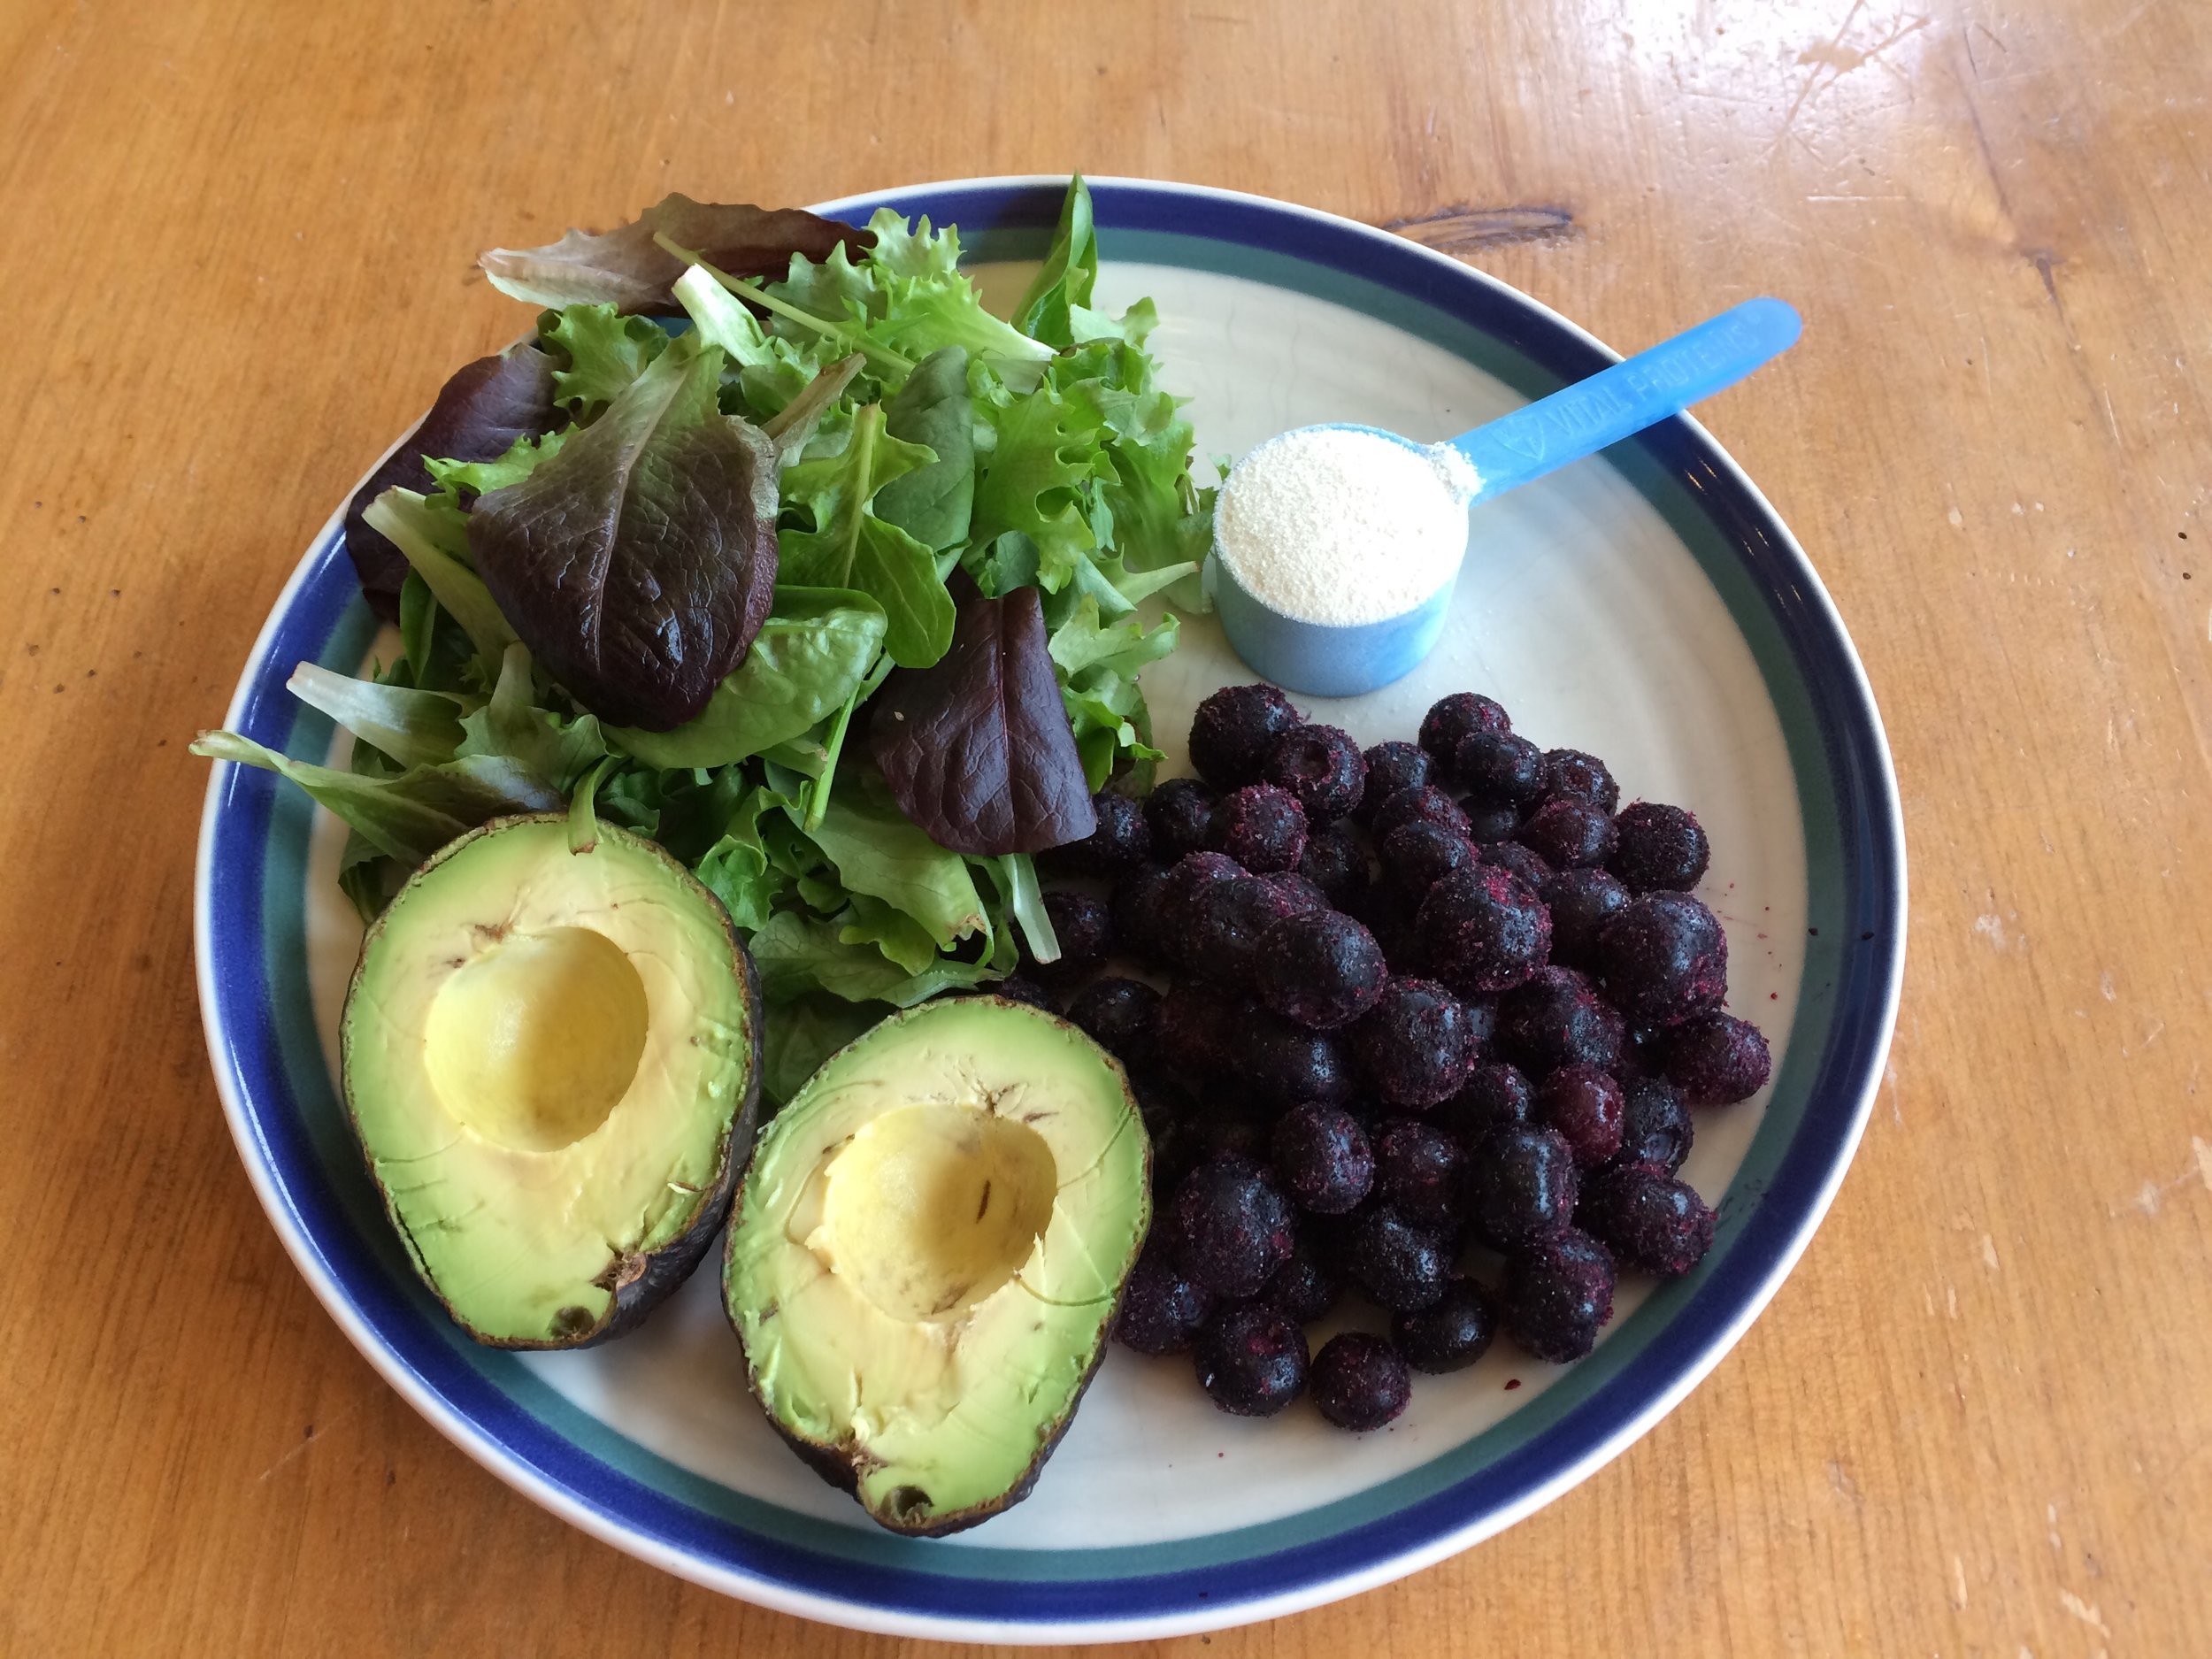 Here's an example of ingredients for a Blueberry Avocado Smoothie that fit my Gut-Healthy criteria for the new Canada's Food Guide. 1/2 the plate is filled with leafy greens and avocado (technically a fruit, but since it's low carb, I include it in my Vegetable section), 1/4 plate with blueberries, and I've added a scoop of collagen powder for my protein. The avocado also provides the healthy fat, and makes this smoothie rich and creamy. I just blend the vegetables and fruit up with water, and then add the collagen at the end.